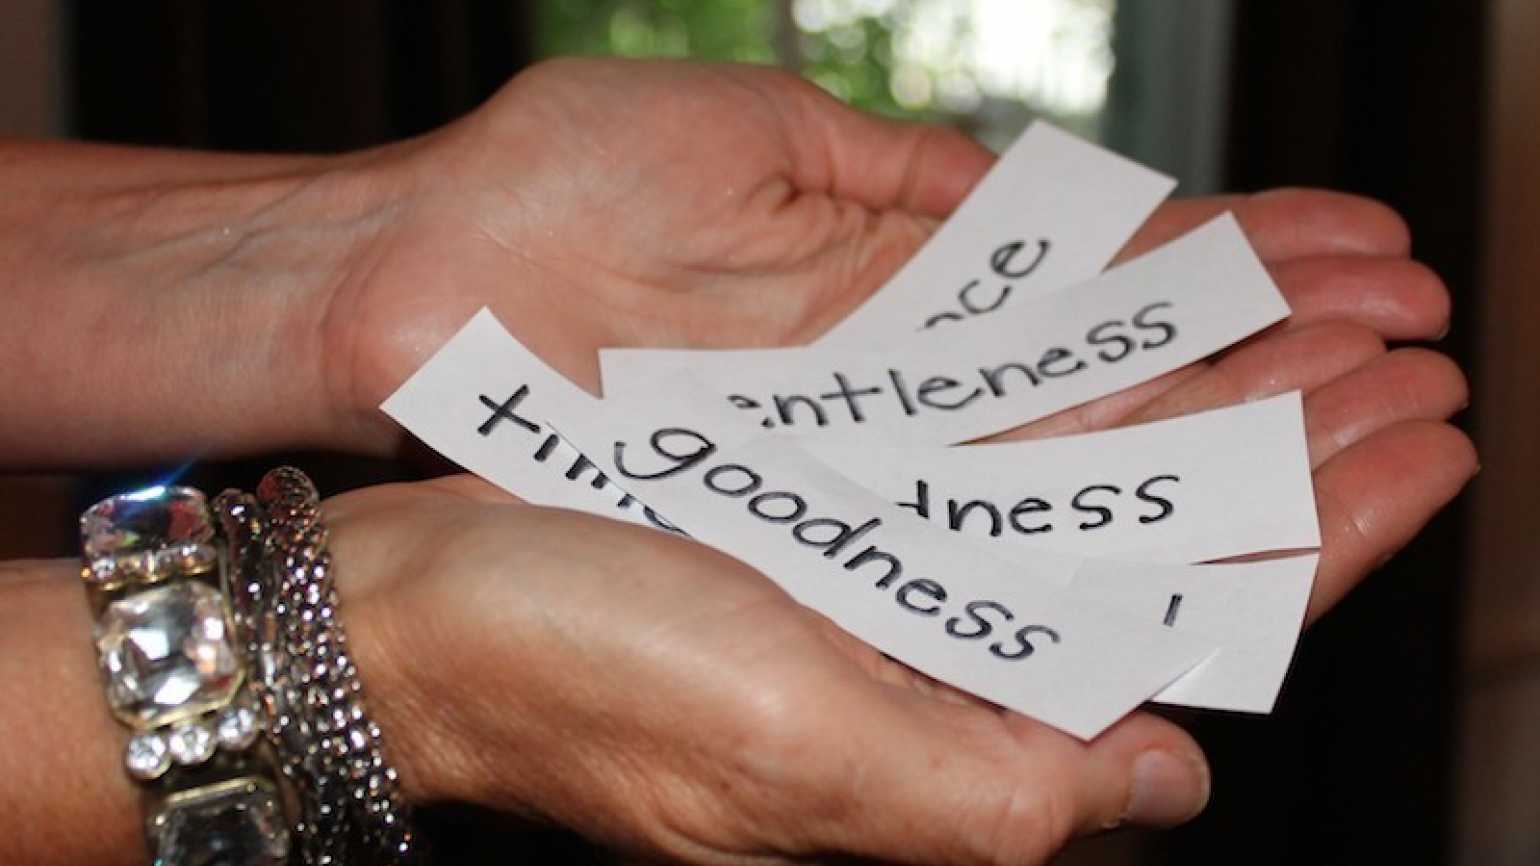 Outstretched hands hold slips of paper that read Goodness, Kindess, etc.